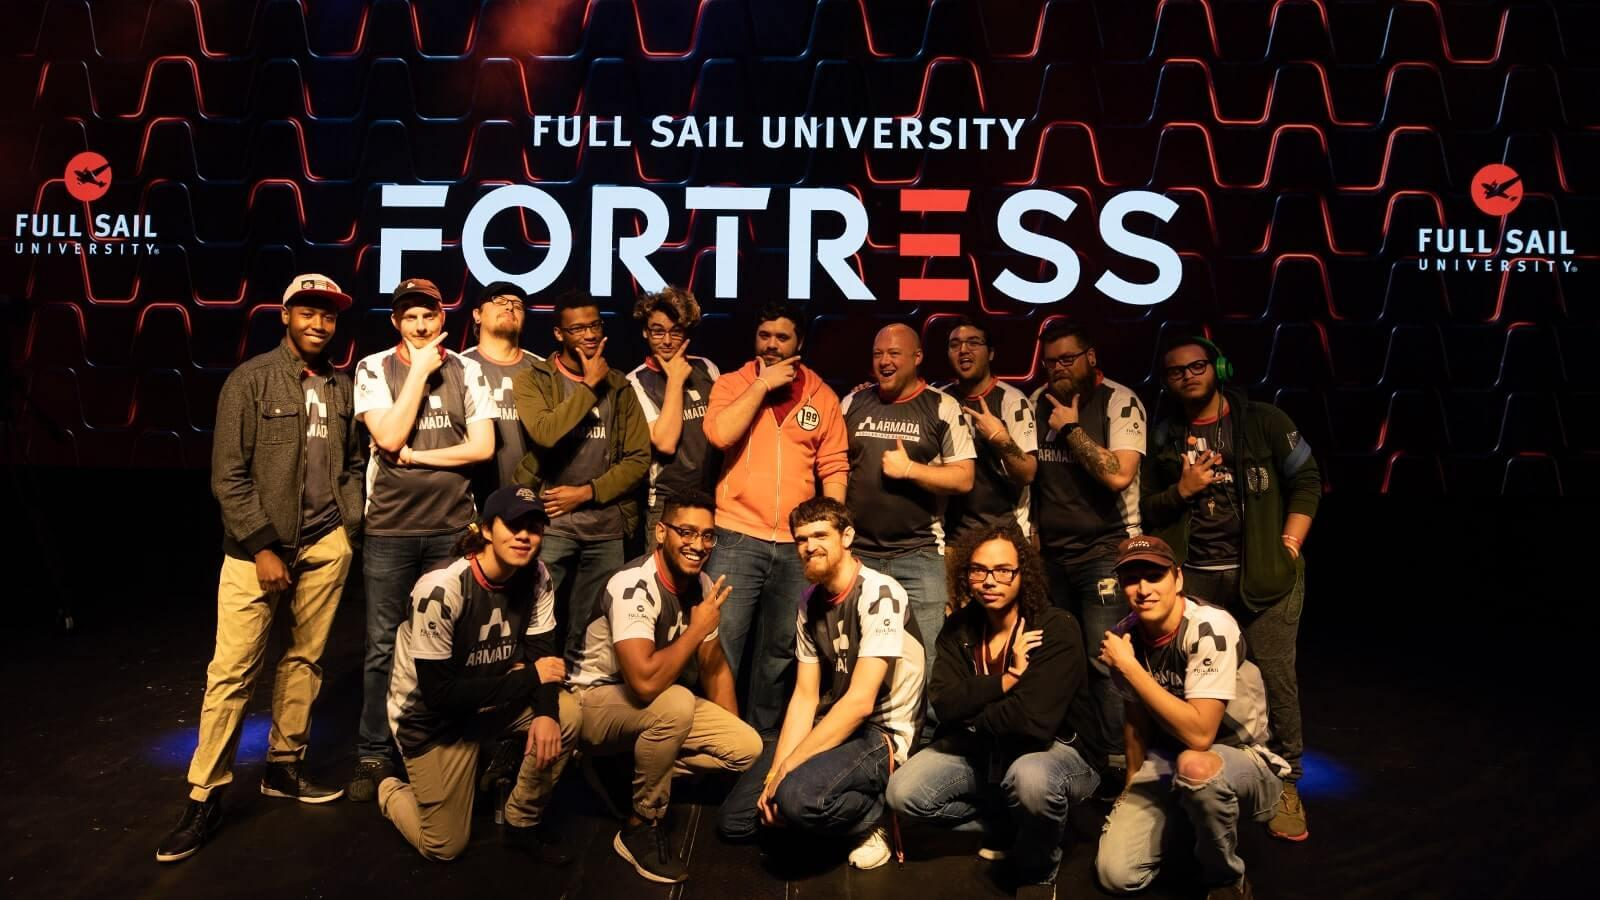 Featured image - Full Sail Offers Guests A Sneak Peek Of The Fortress Inline 3